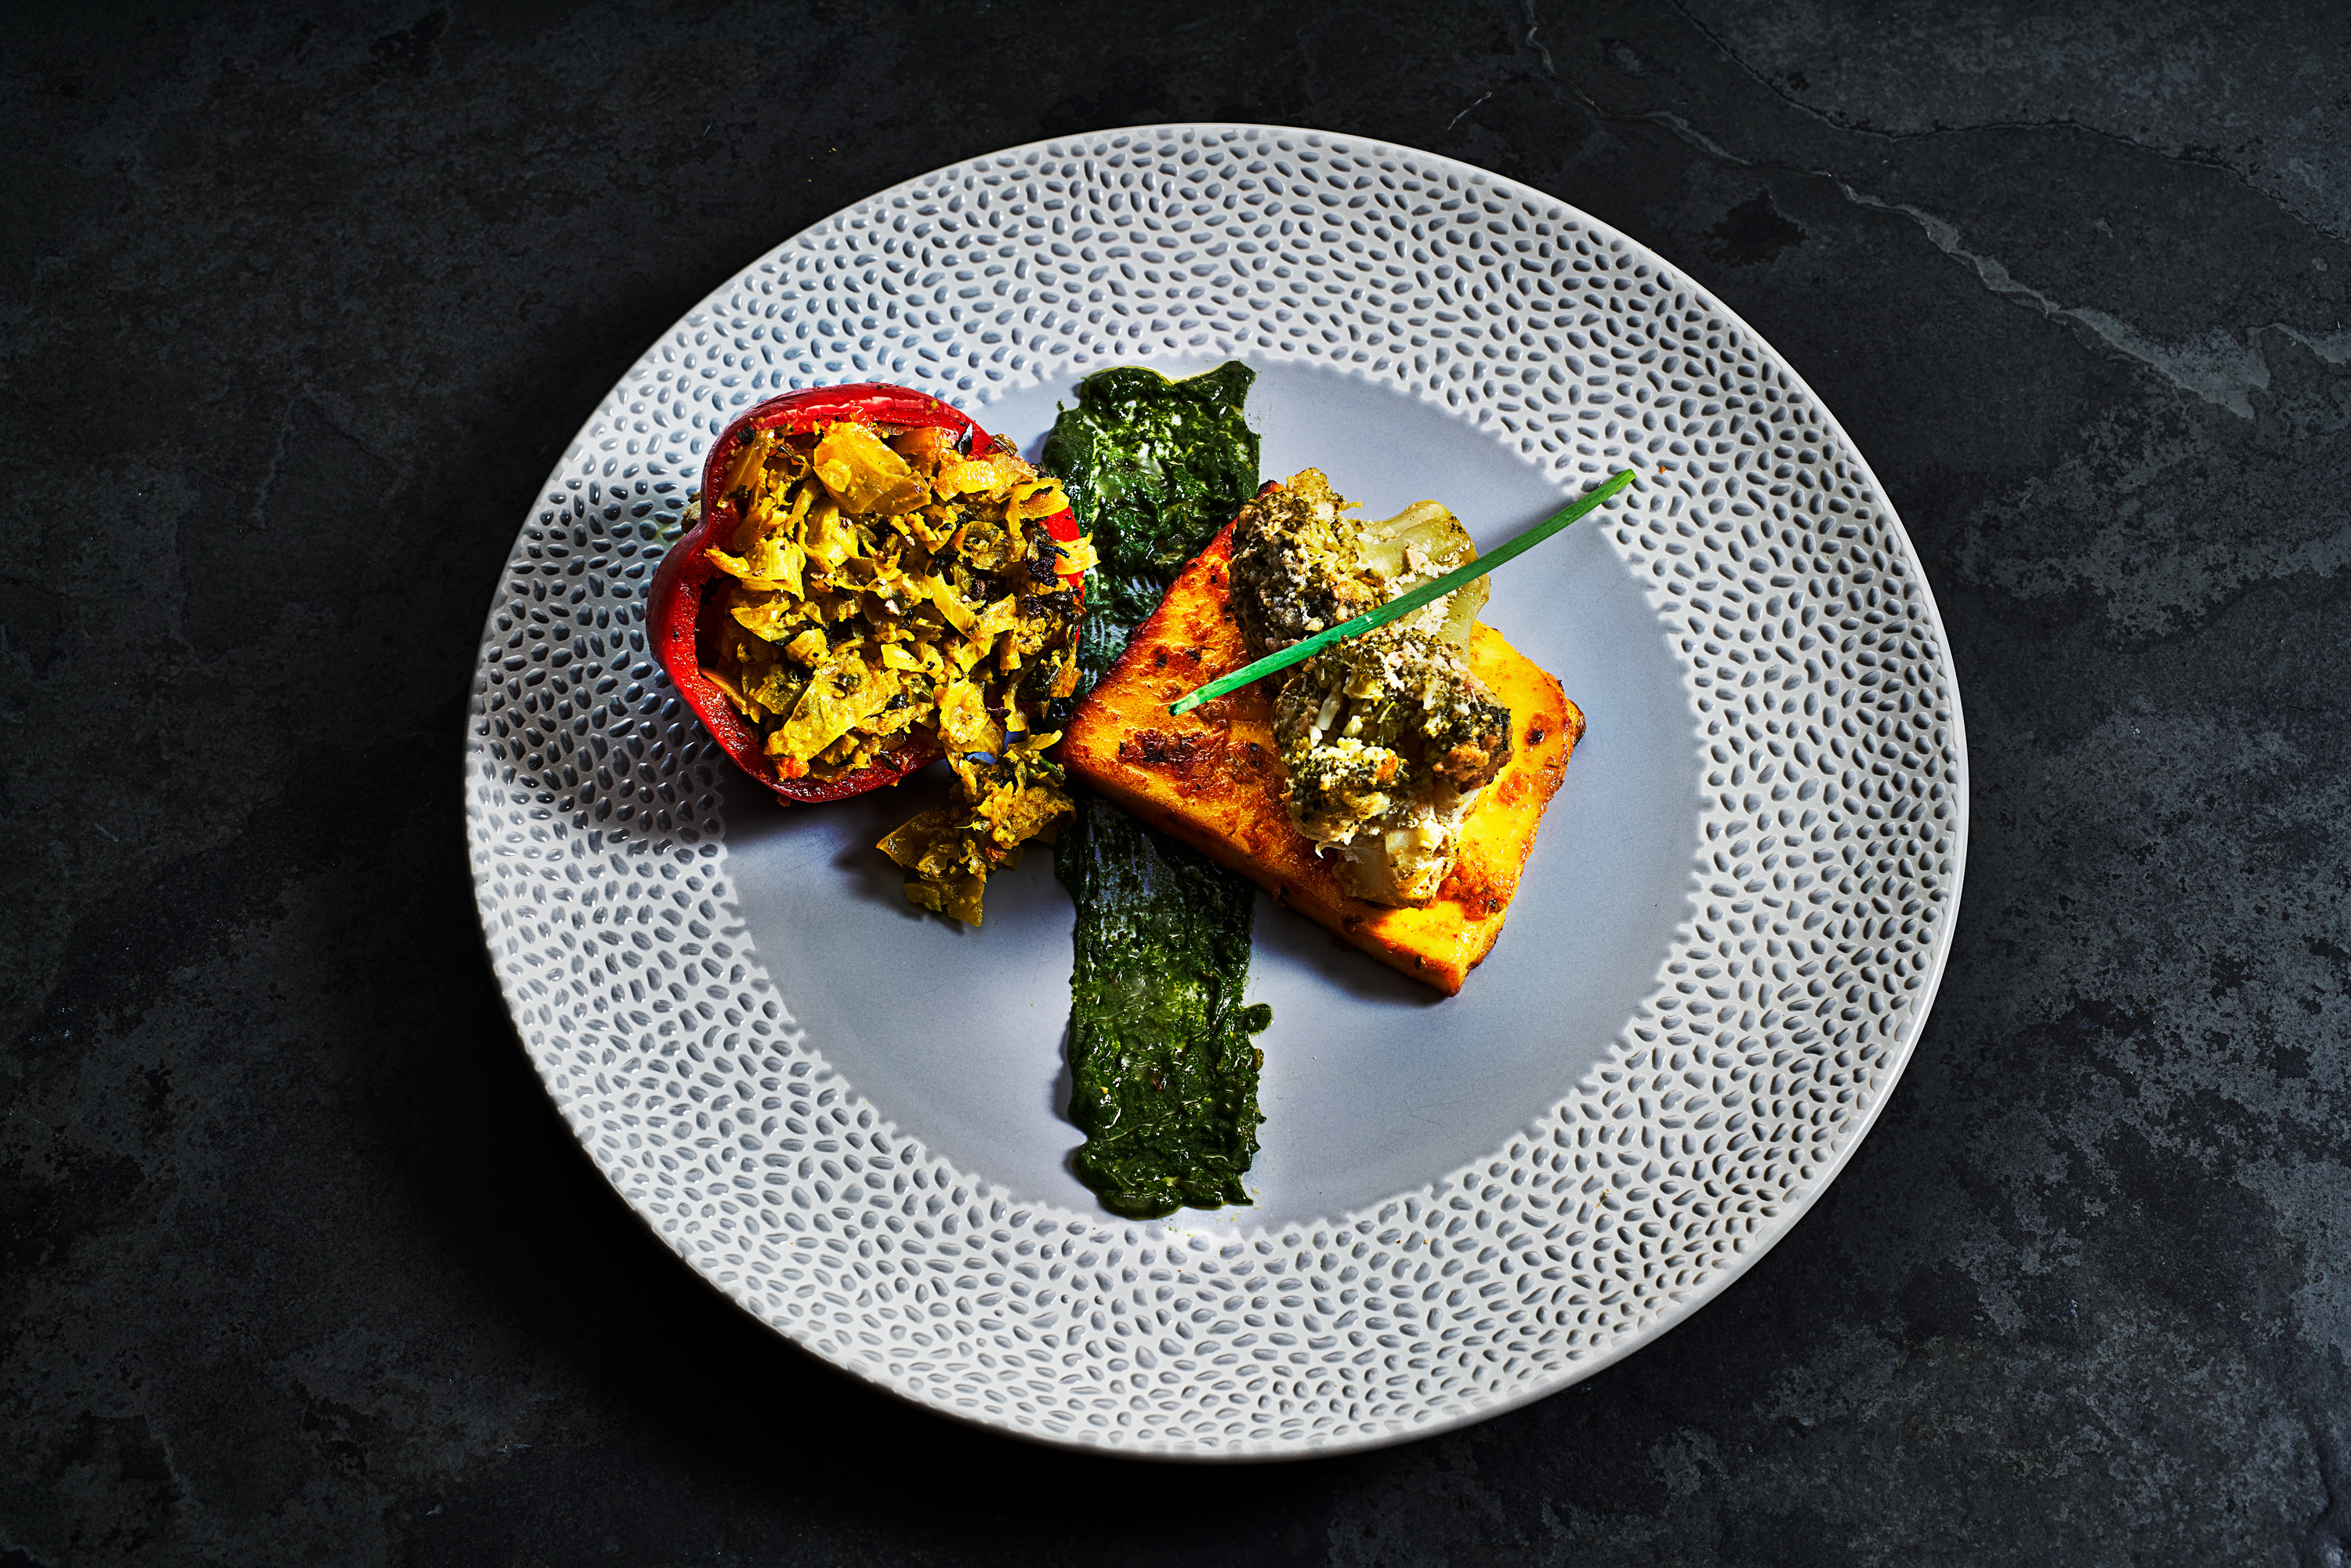 Photograph of Indian style Vegan option, tandoori tofu by London food photographer, Michael Michaels